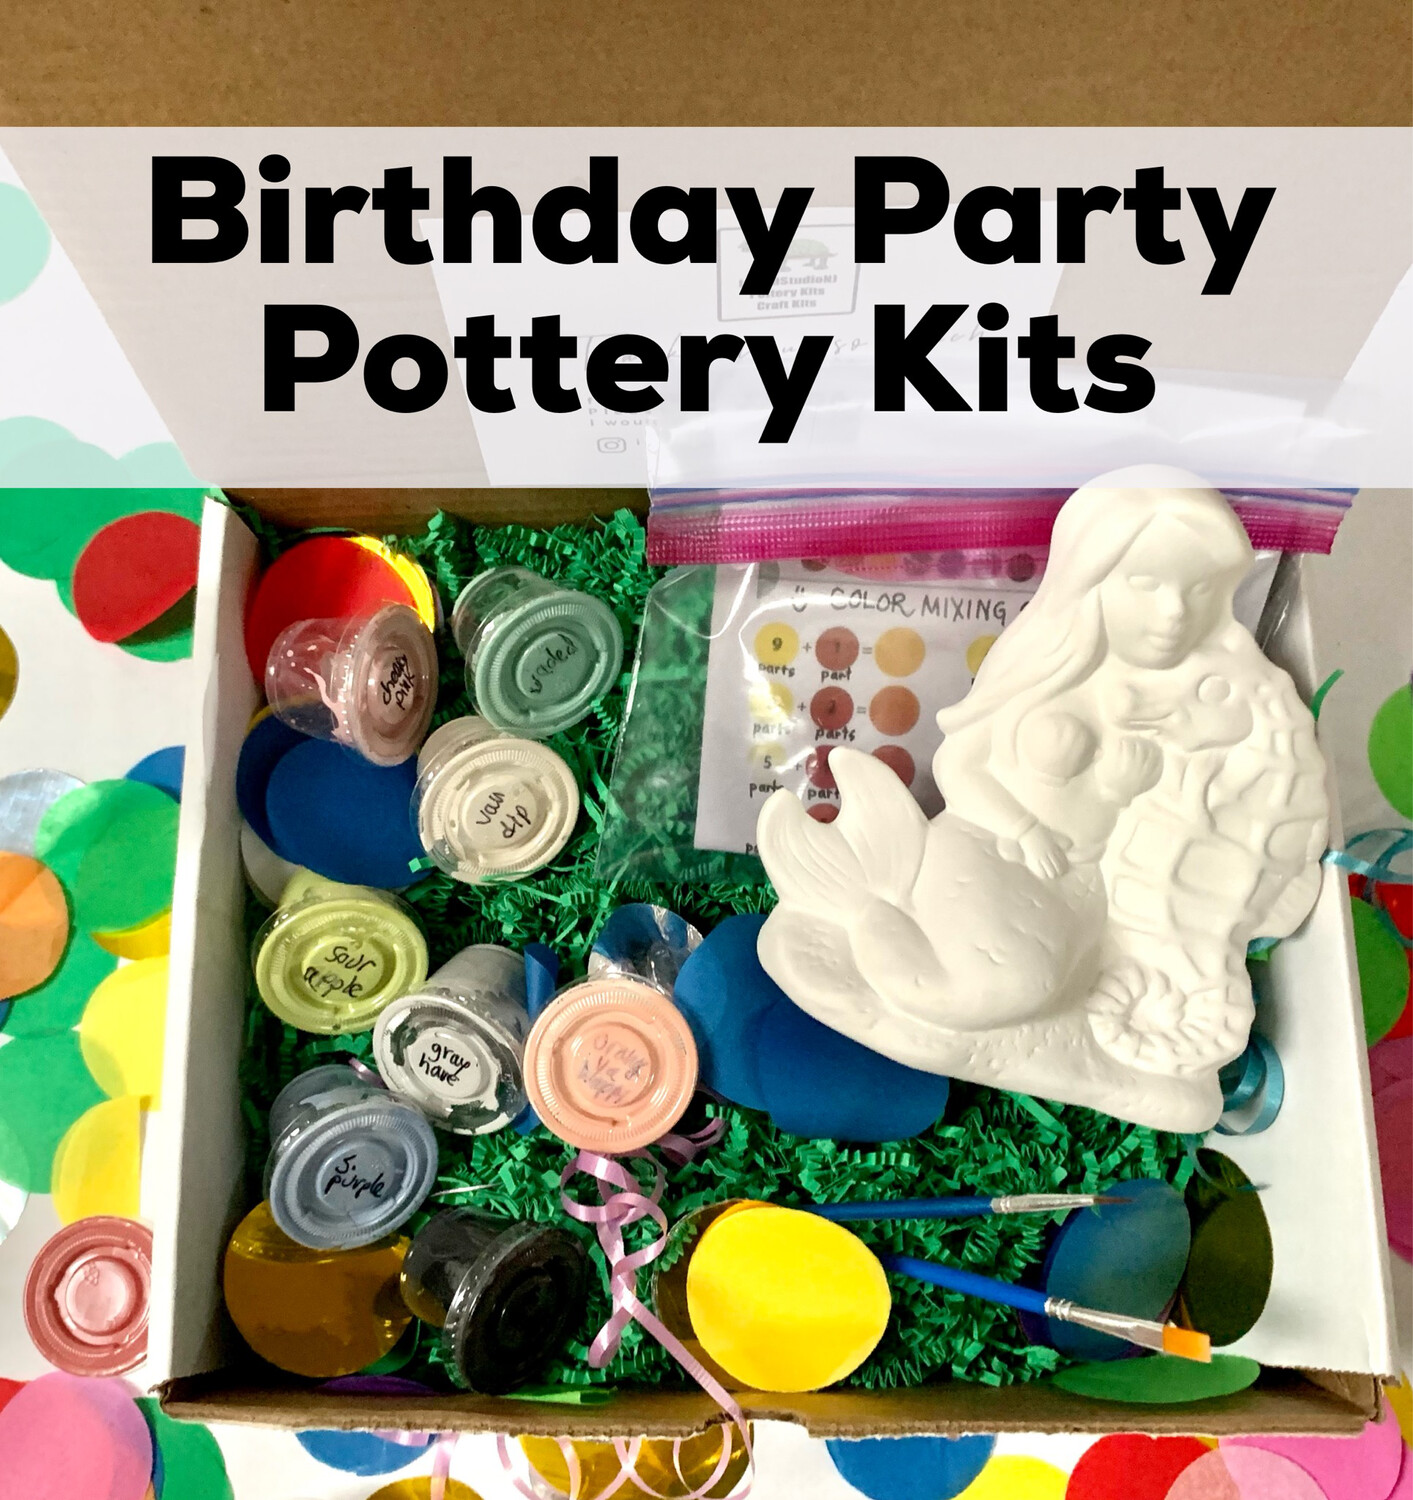 Discounted Birthday Party Kits - Paint Your Own Pottery - Minimum of 6 Guests